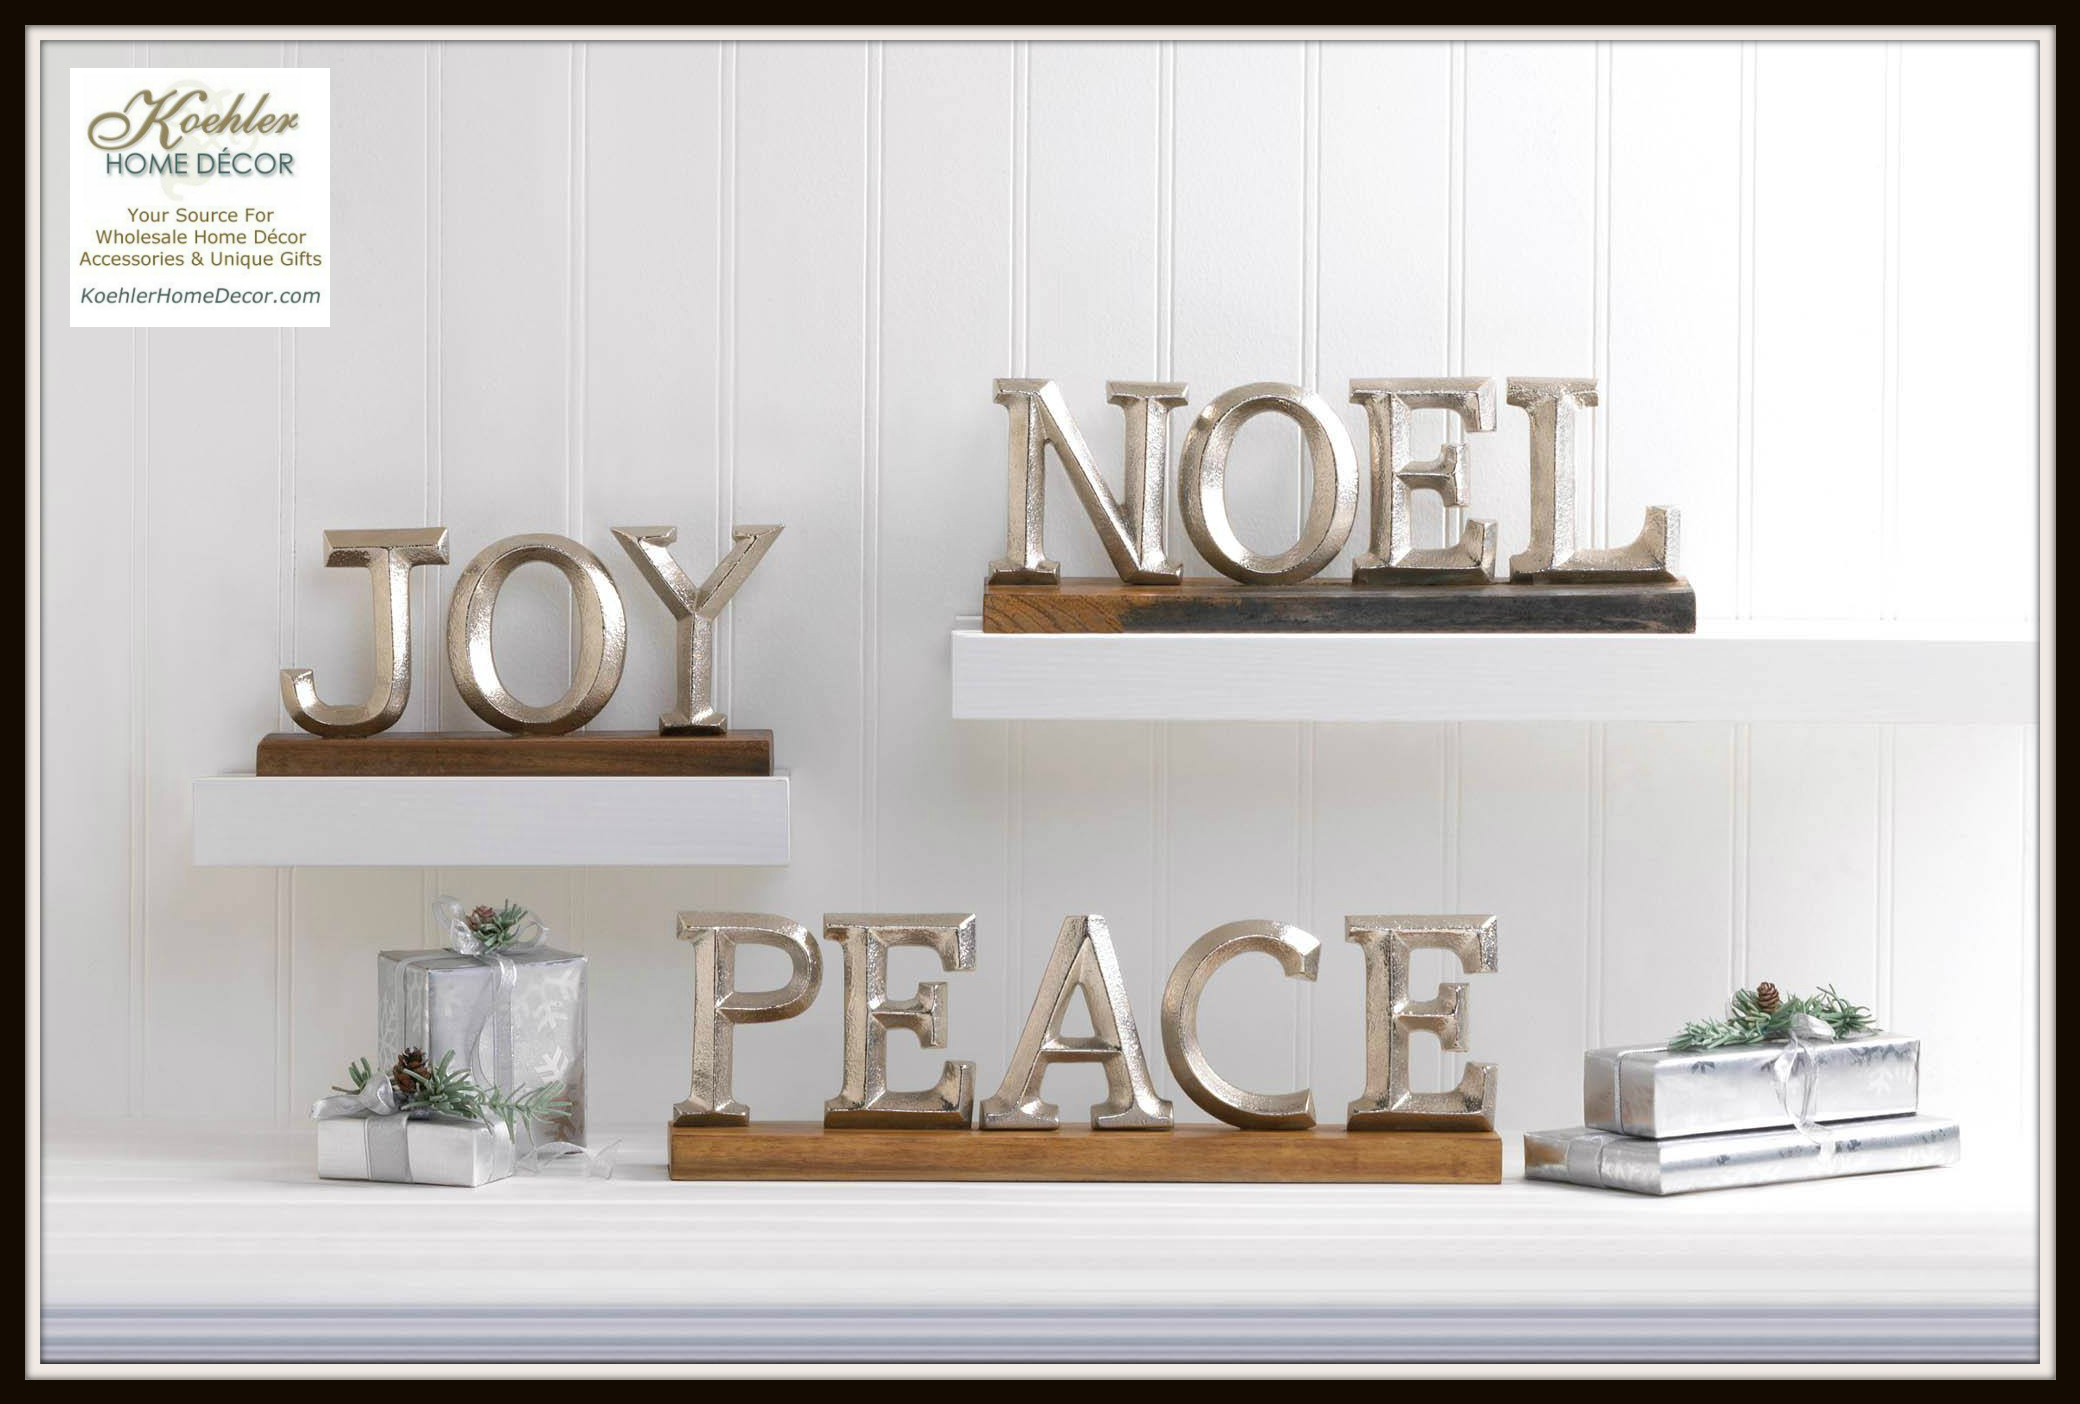 New at khd holiday block letter decor koehler home for Koehler home decor